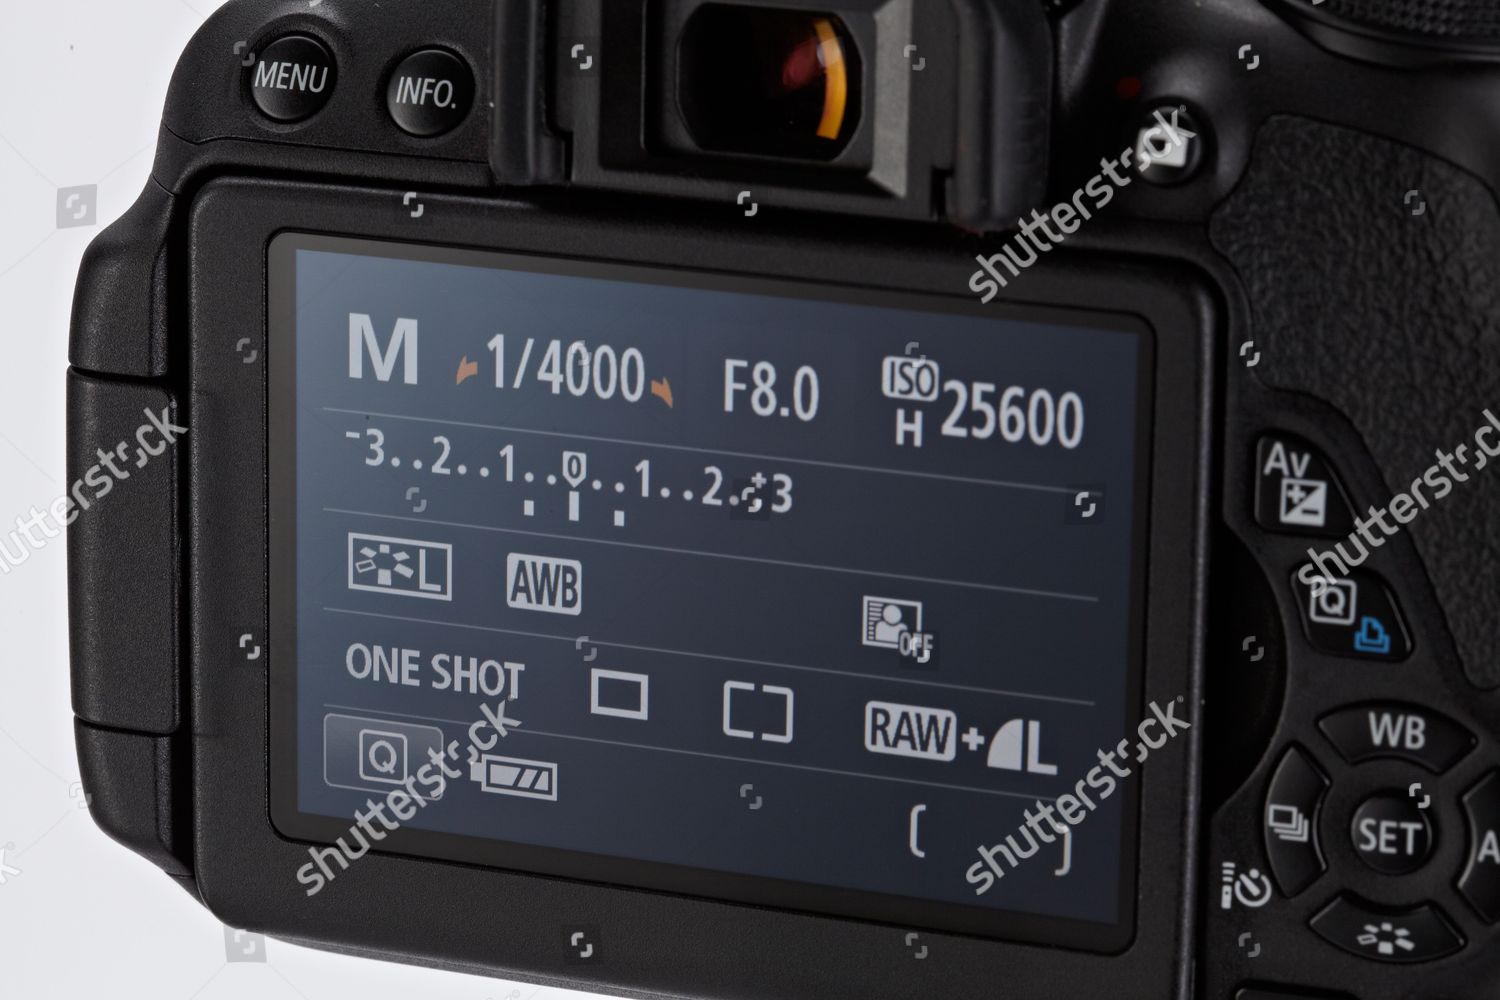 Lcd Screen On Rear Canon Eos 700d Editorial Stock Photo